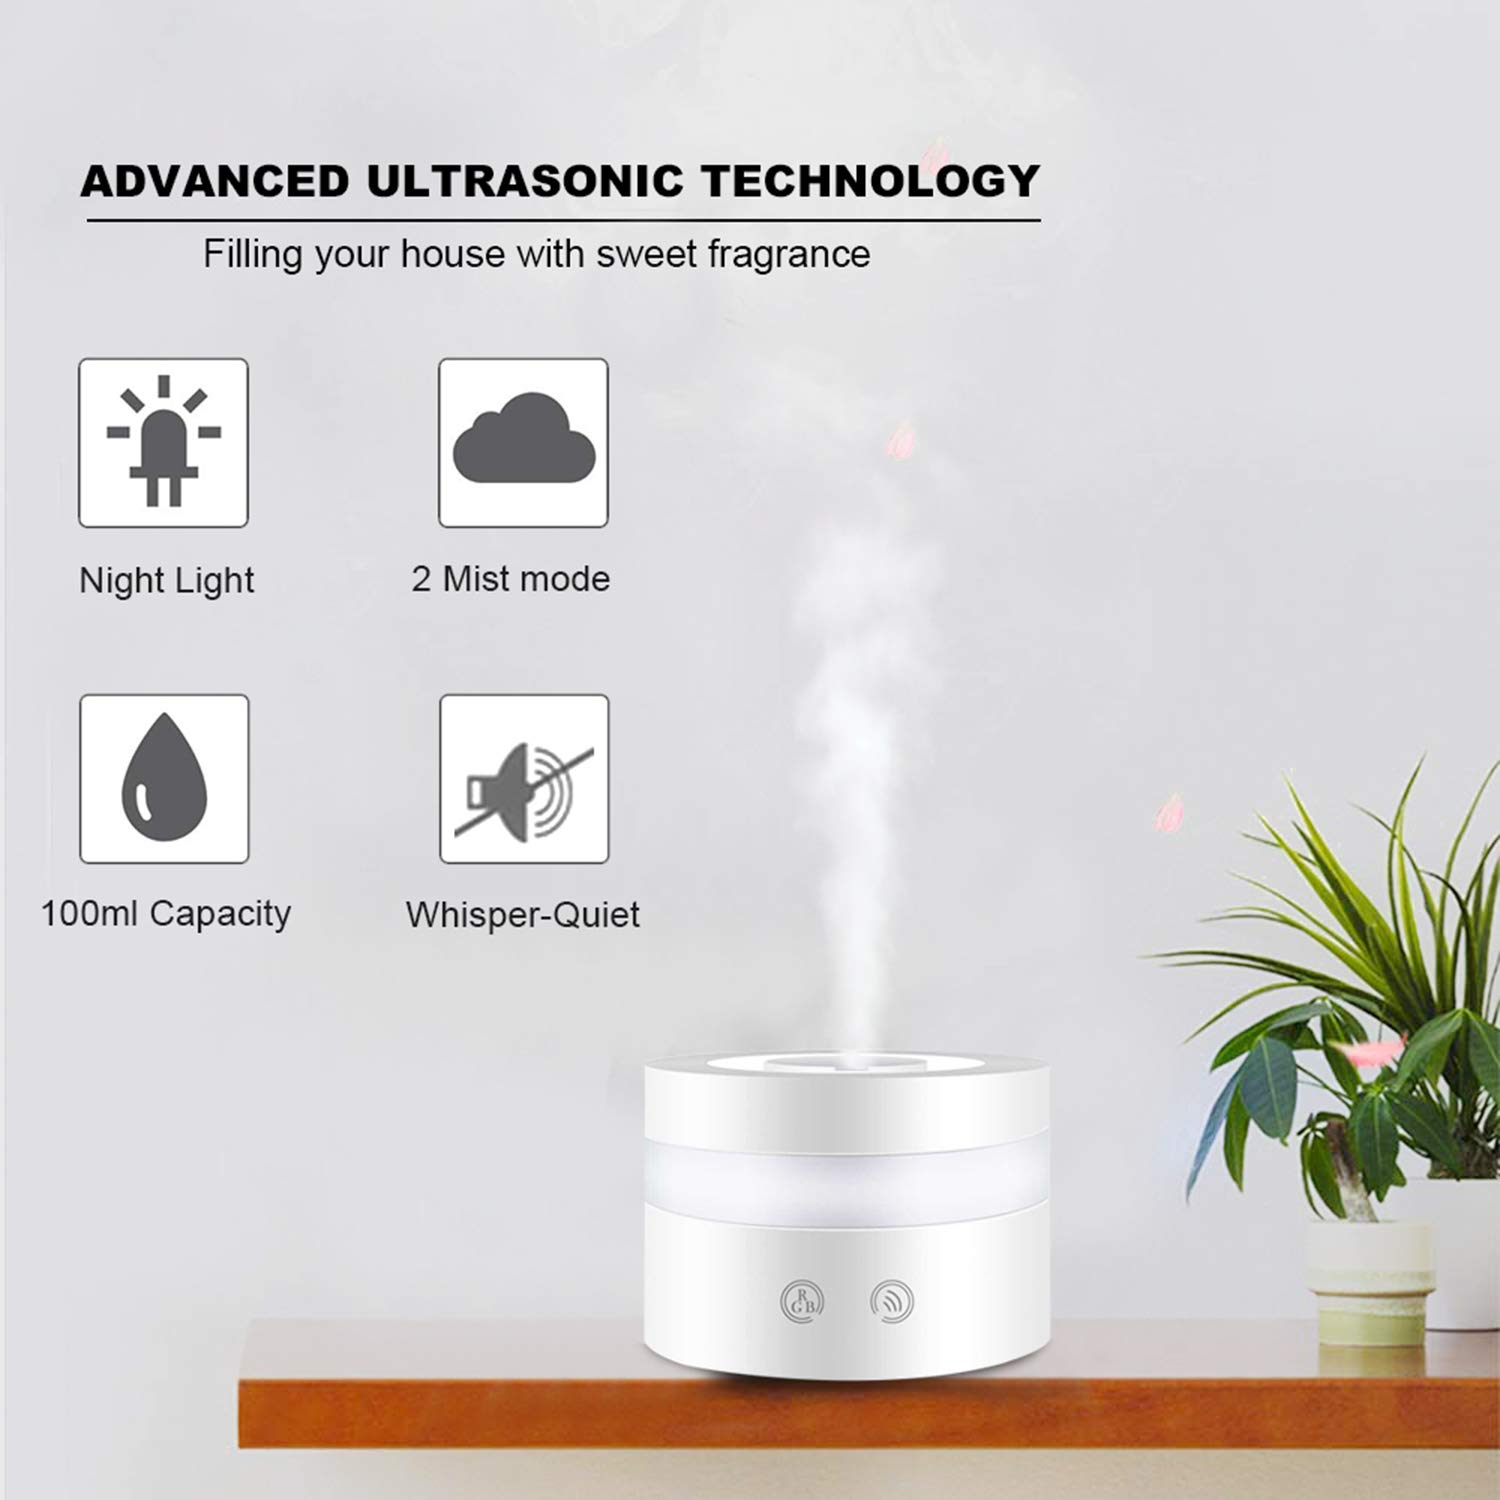 Home Appliances 2019 New Mini Usb Colorful Light Humidifier Miniature Landscape For Home Office Air Purifier Car Aroma Essential Oil Diffuser Latest Technology